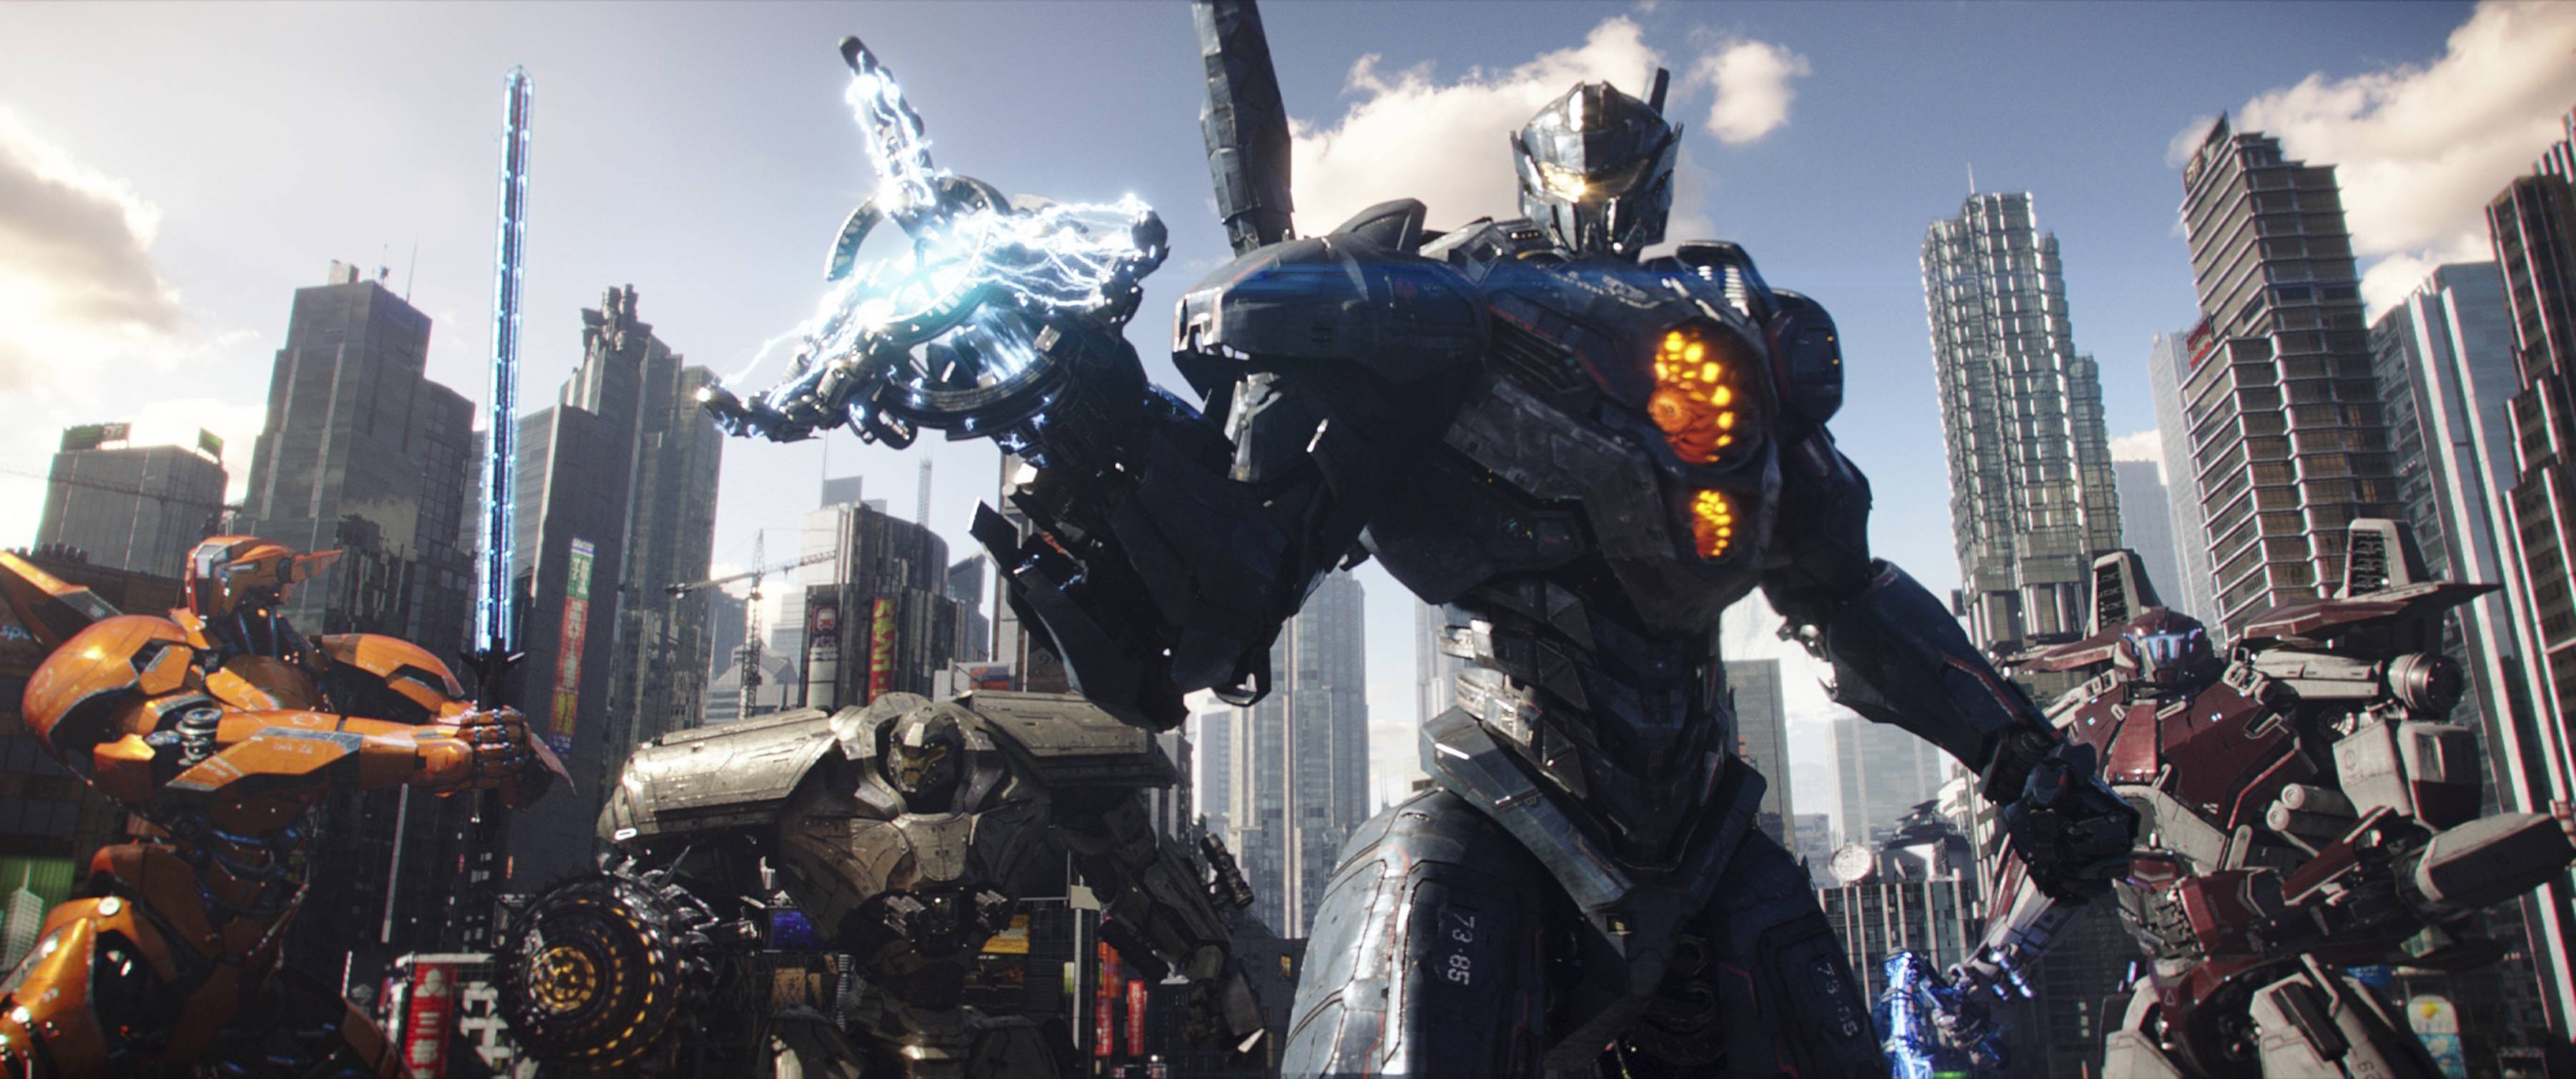 "Robots and monsters battle once more in ""Pacific Rim Uprising."""